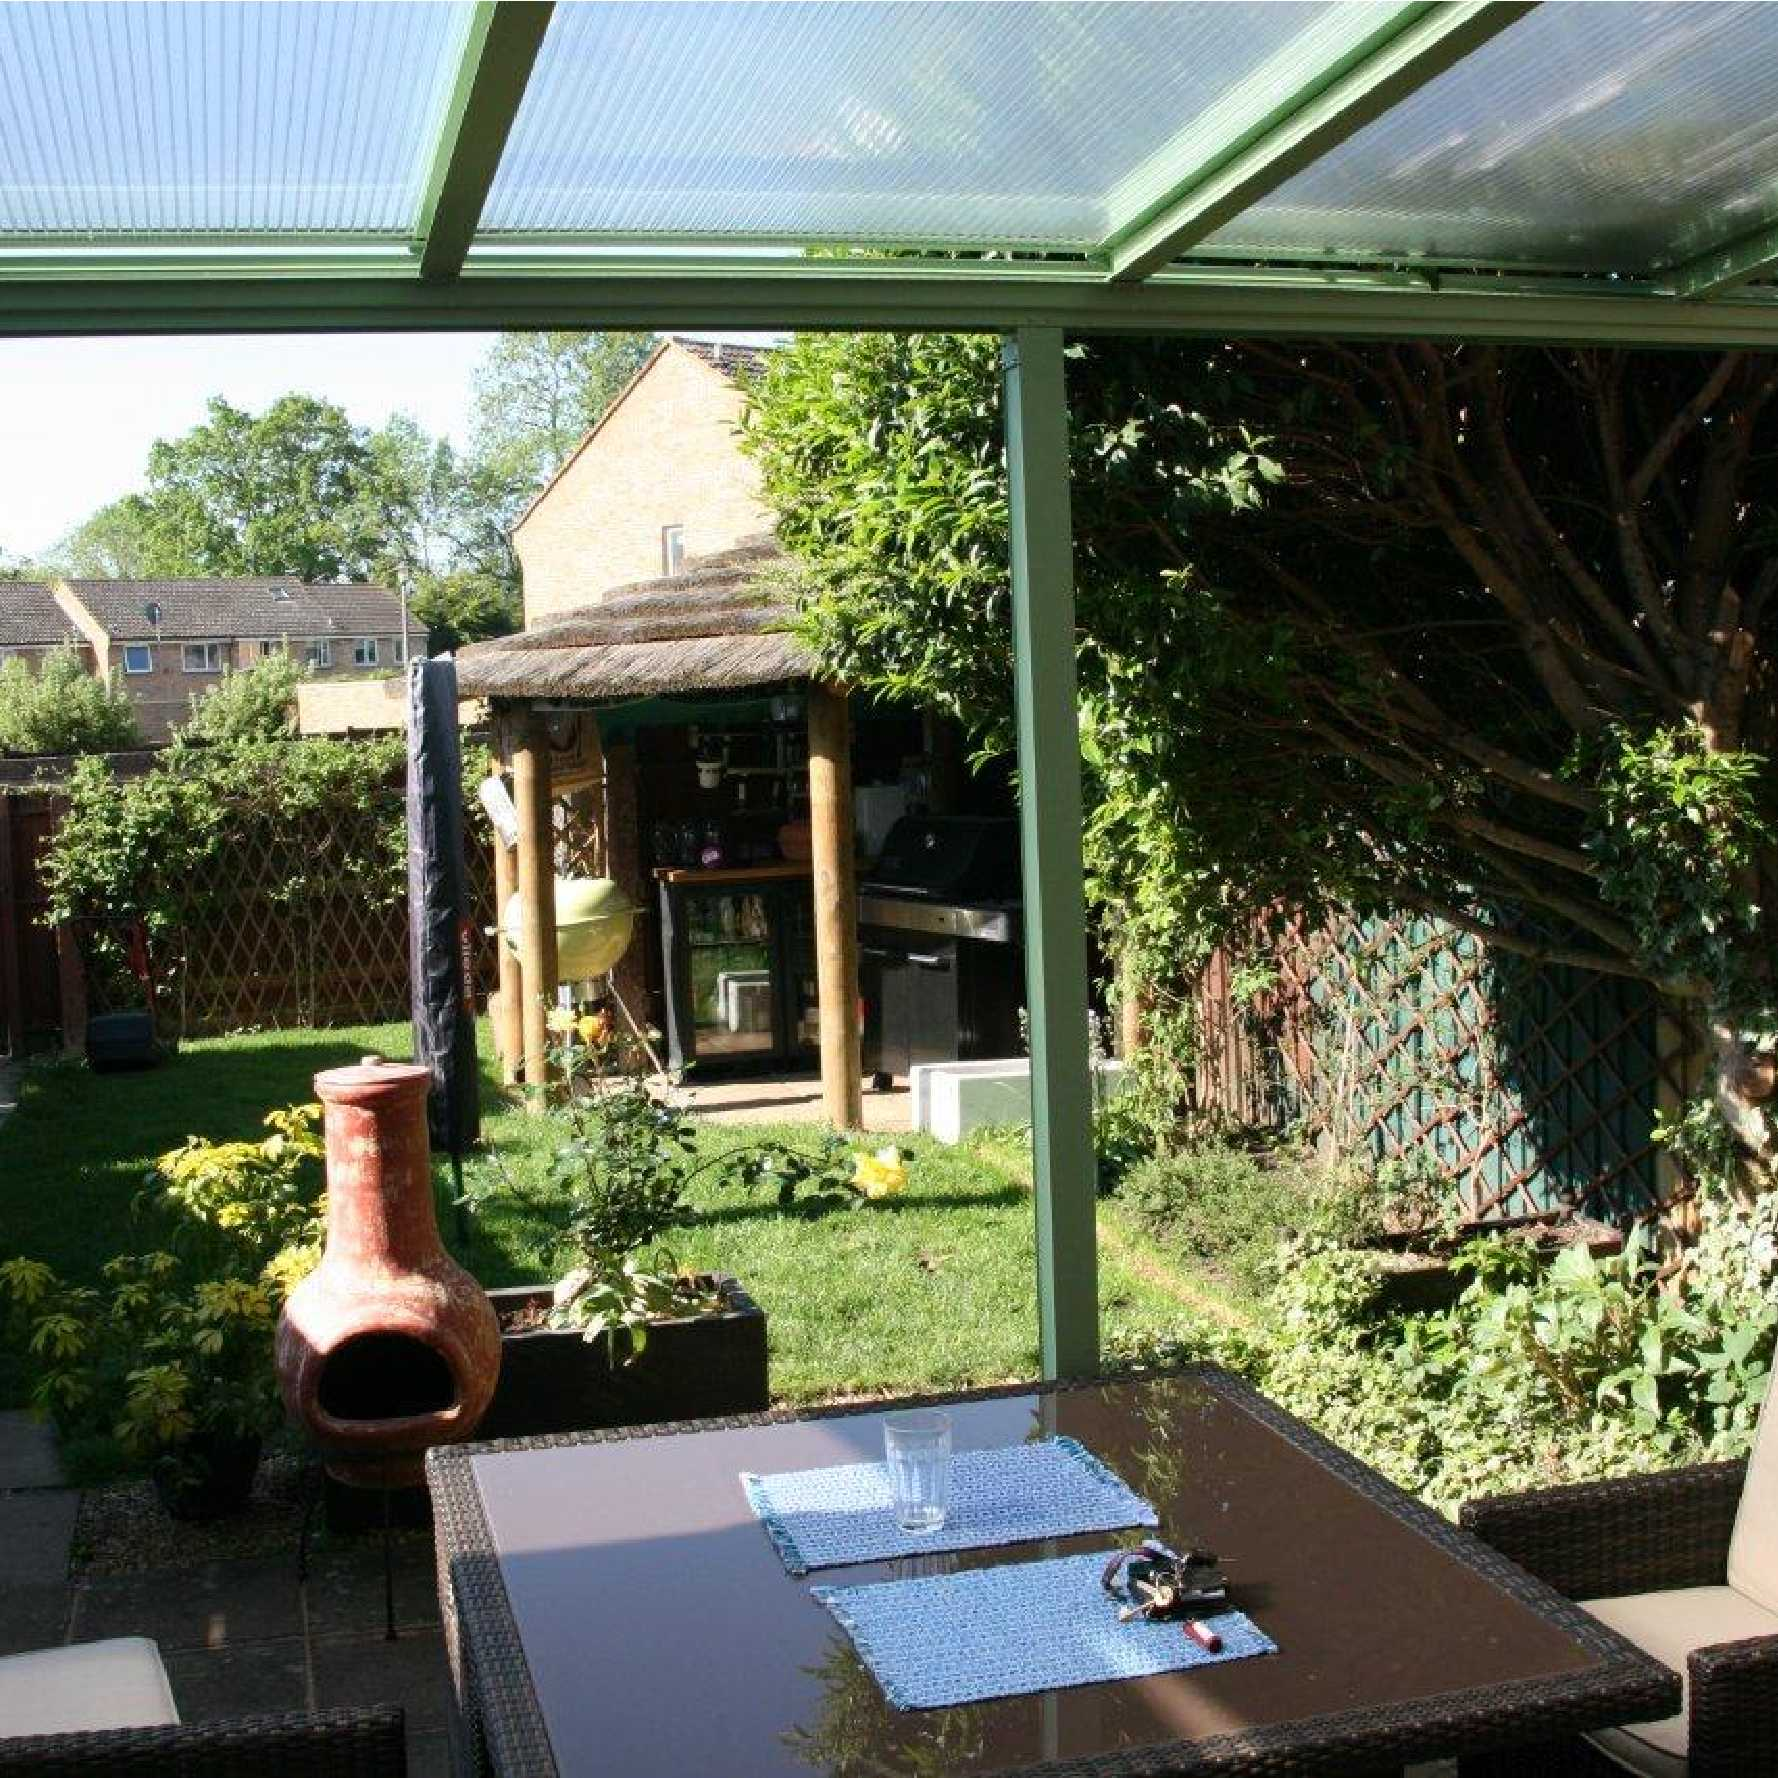 Affordable Omega Smart Lean-To Canopy with 16mm Polycarbonate Glazing - 9.6m (W) x 4.5m (P), (5) Supporting Posts